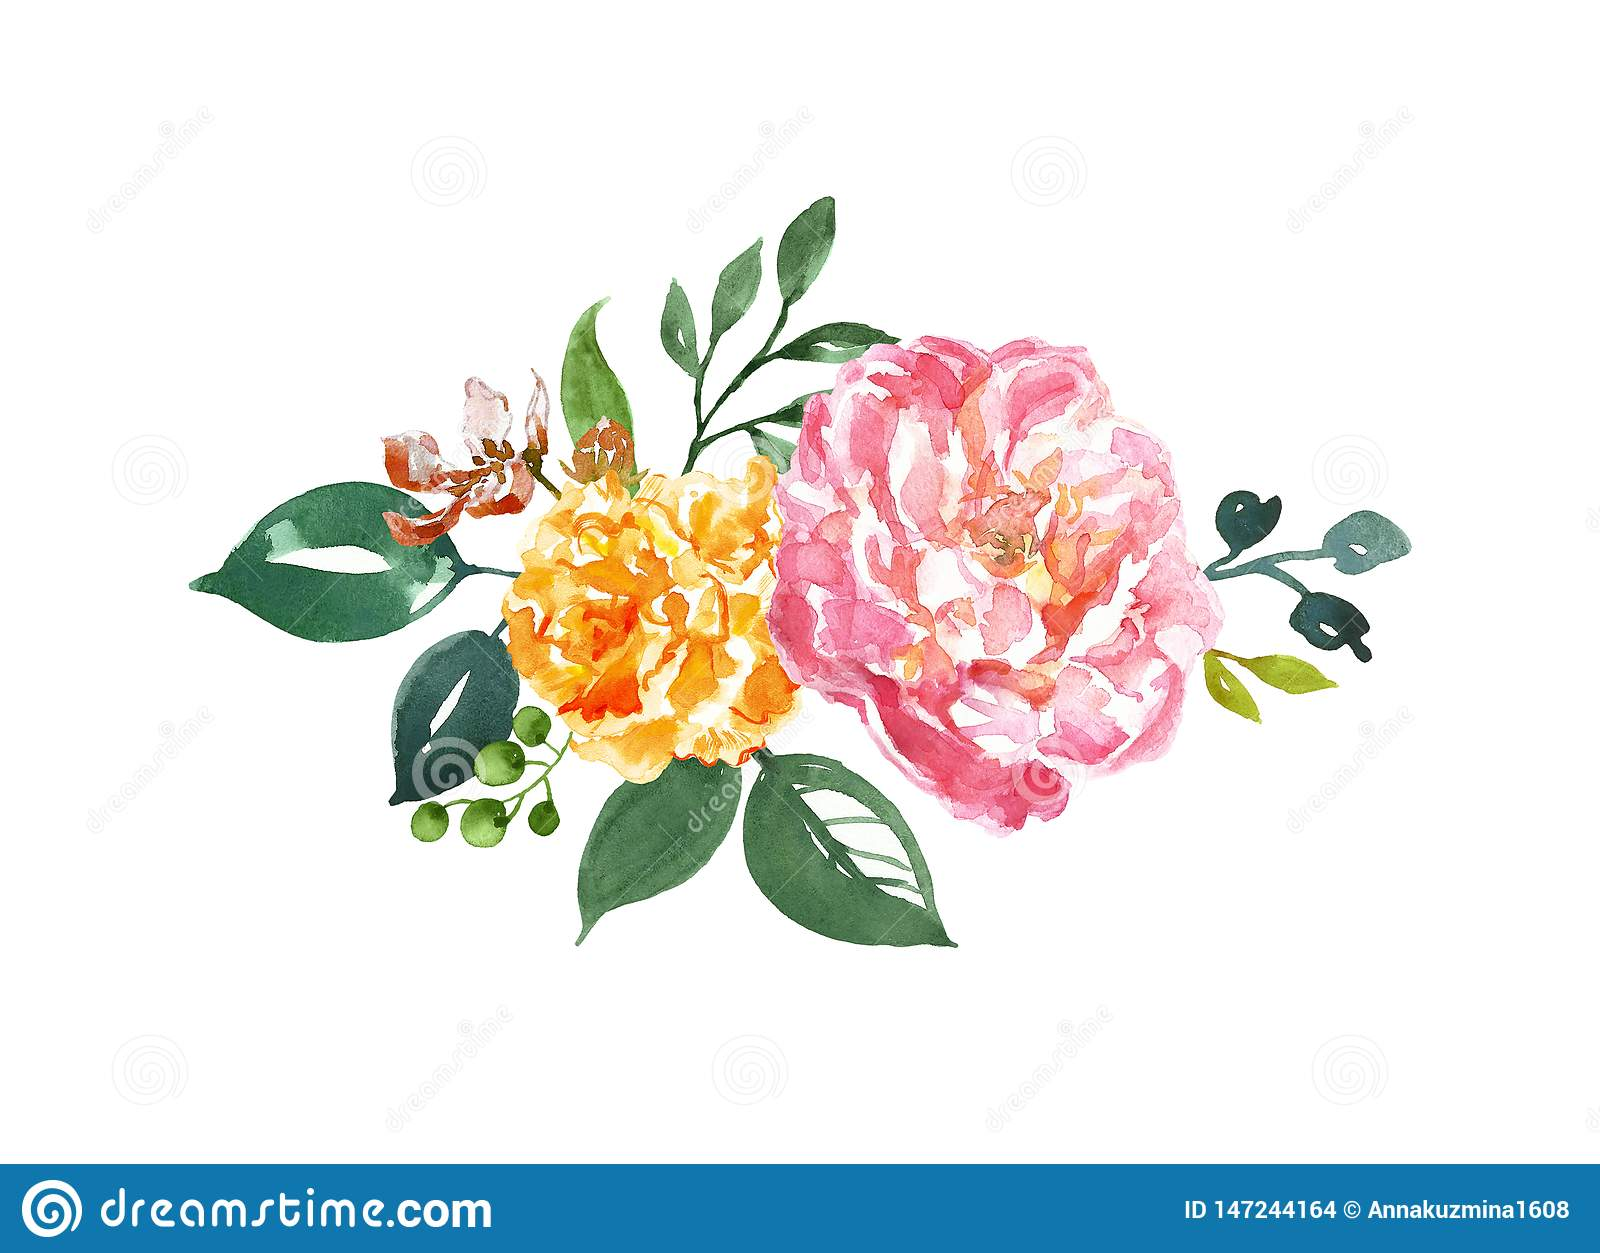 Watercolor Floral Arrangement With Pink And Orange Peonies And Green Leaf On White Background Isolated Flower Bouquet Stock Illustration Illustration Of Arrangement Flowers 147244164